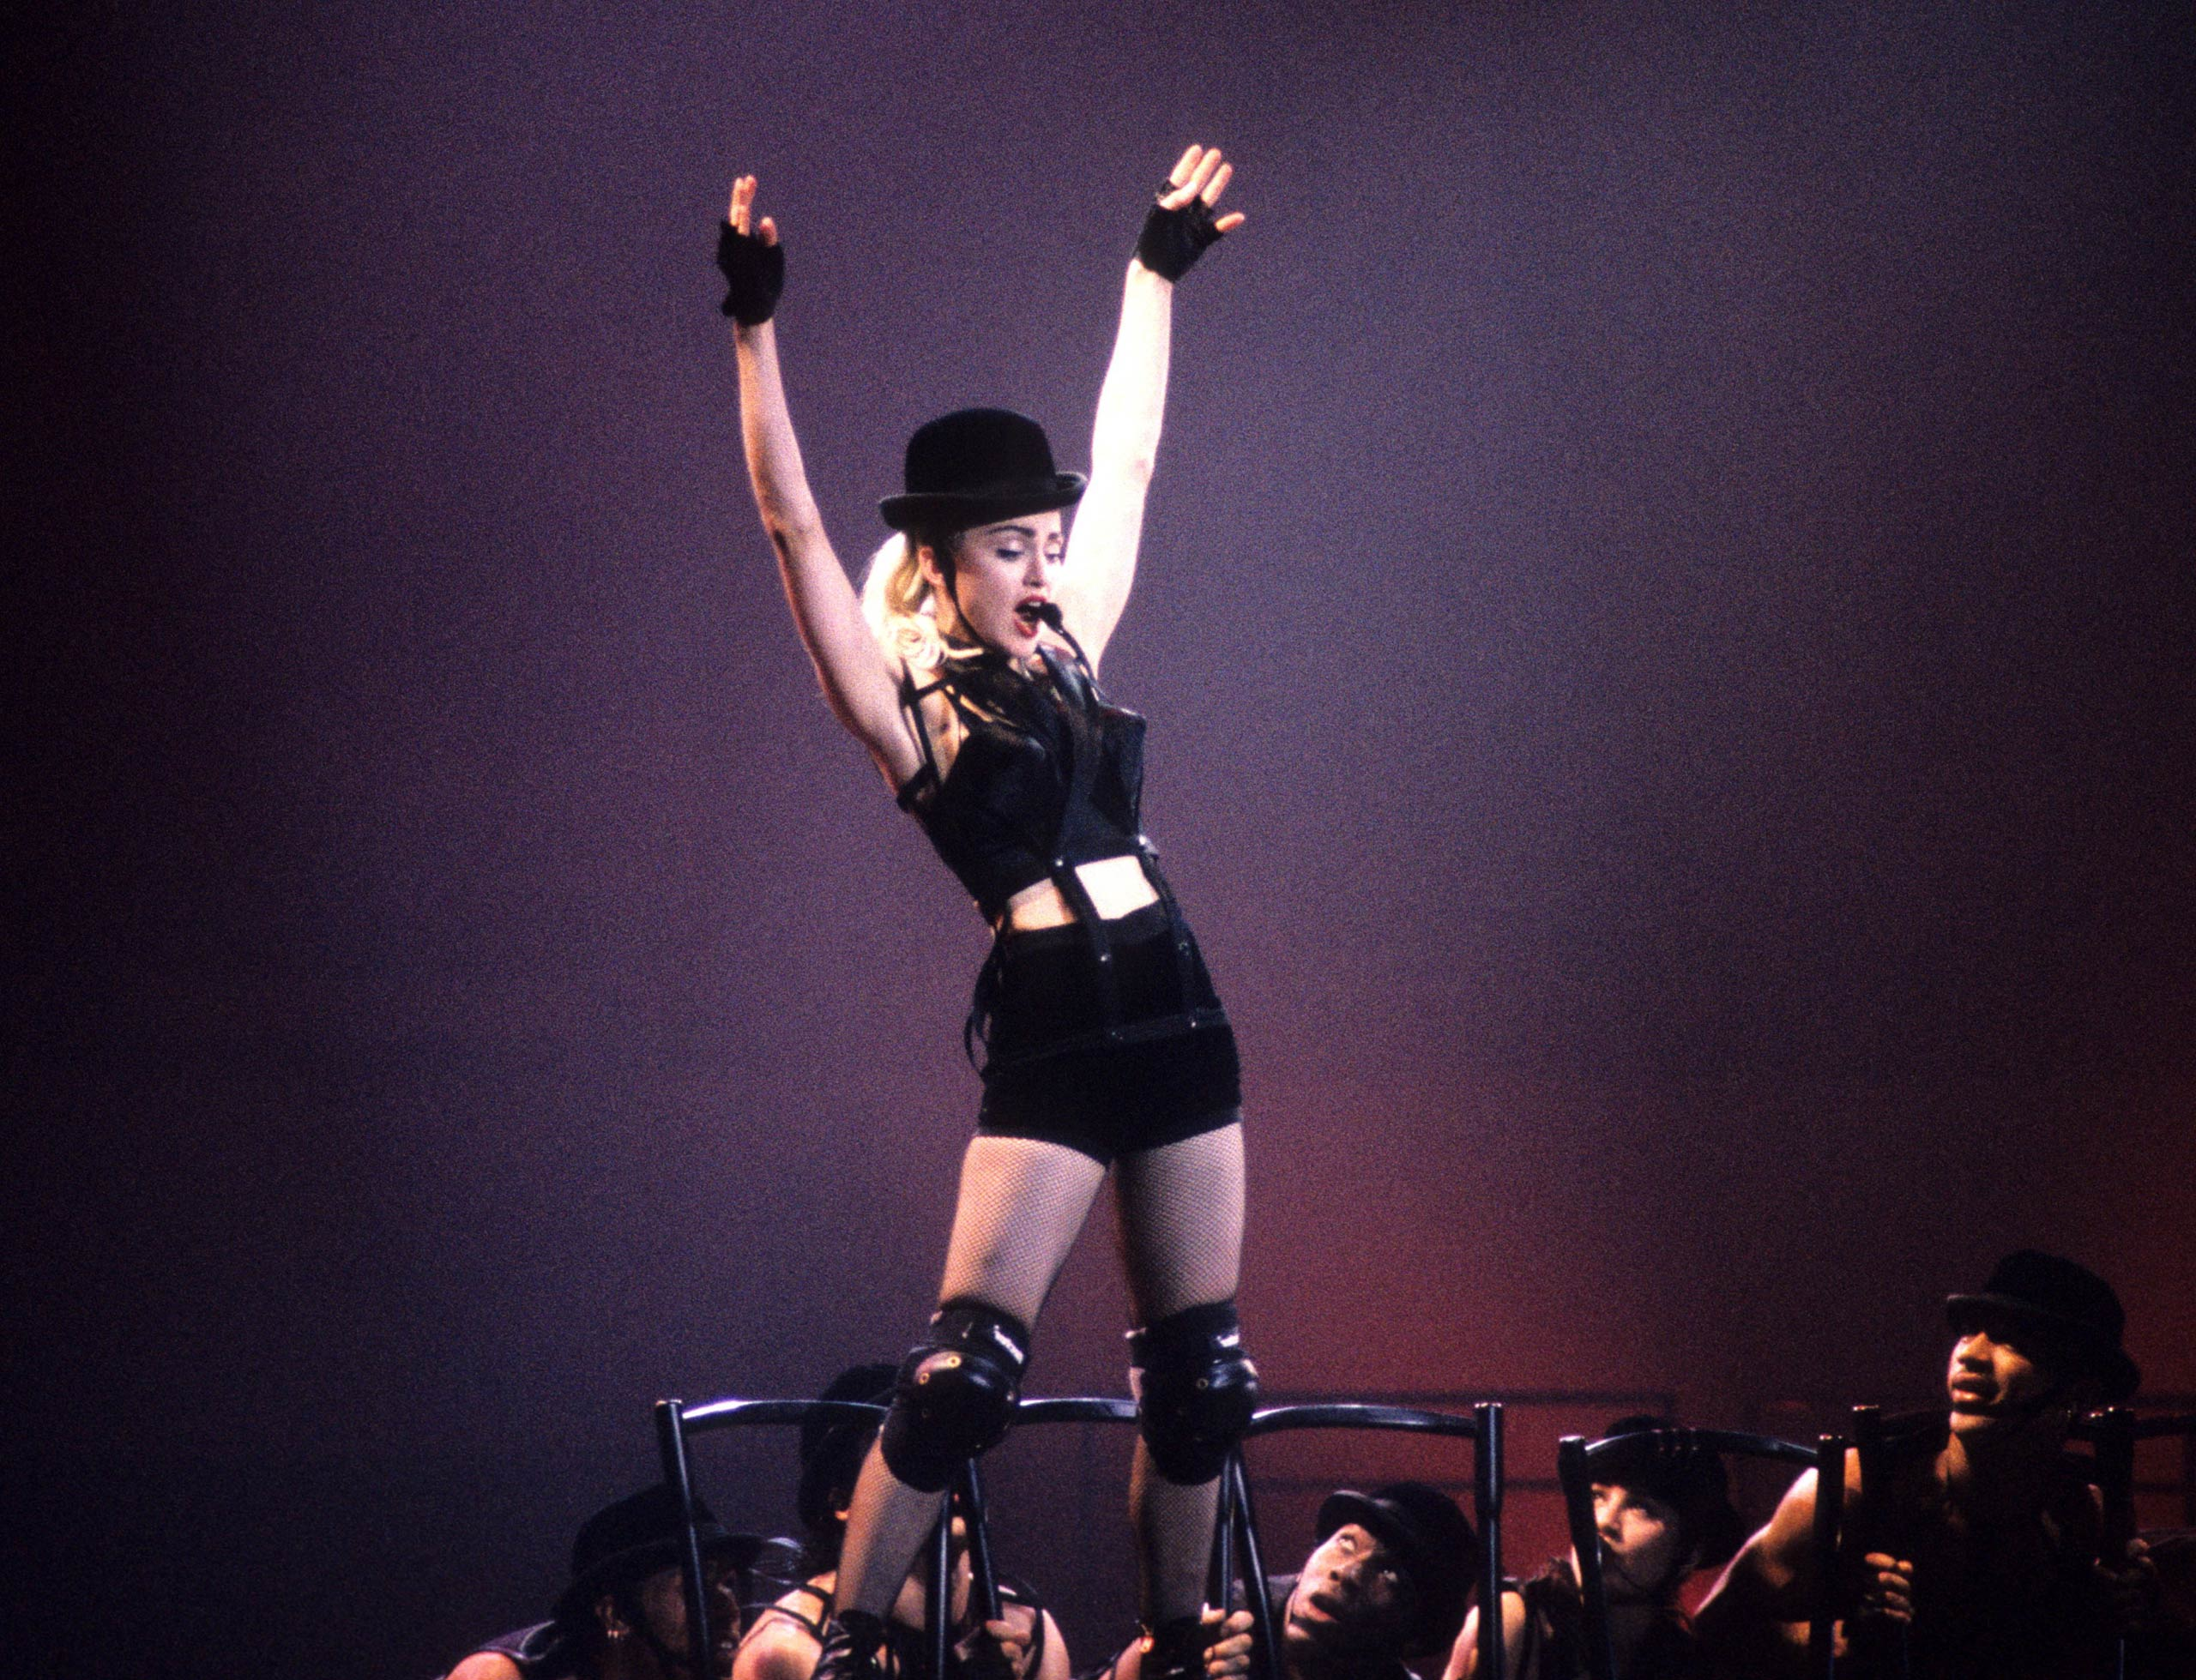 Madonna performs in concert in 1990.